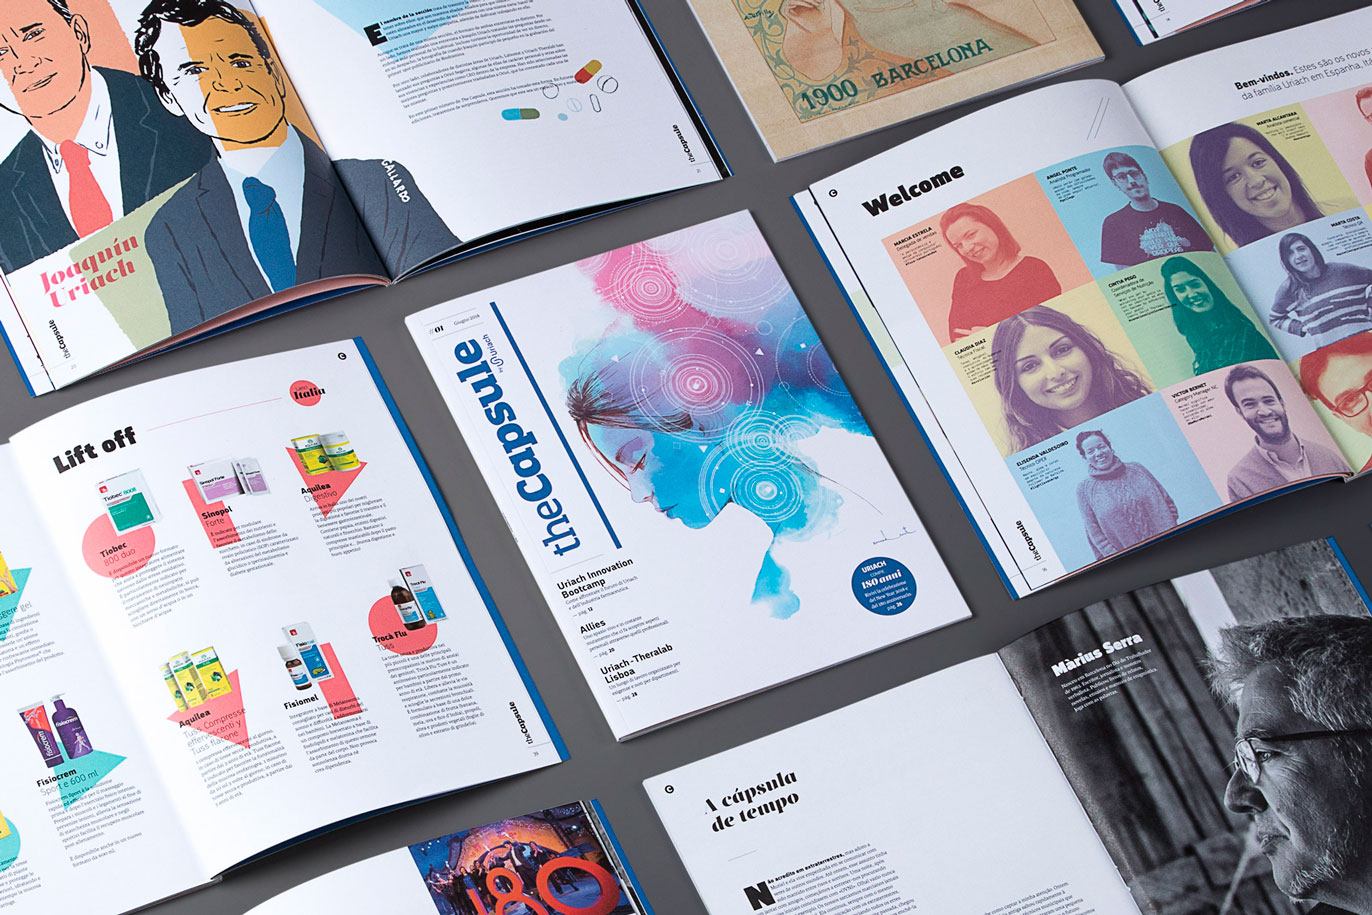 Uriach editorial design the capsule corporate magazine pharmaceutical laboratory graphic design art direction Vibranding